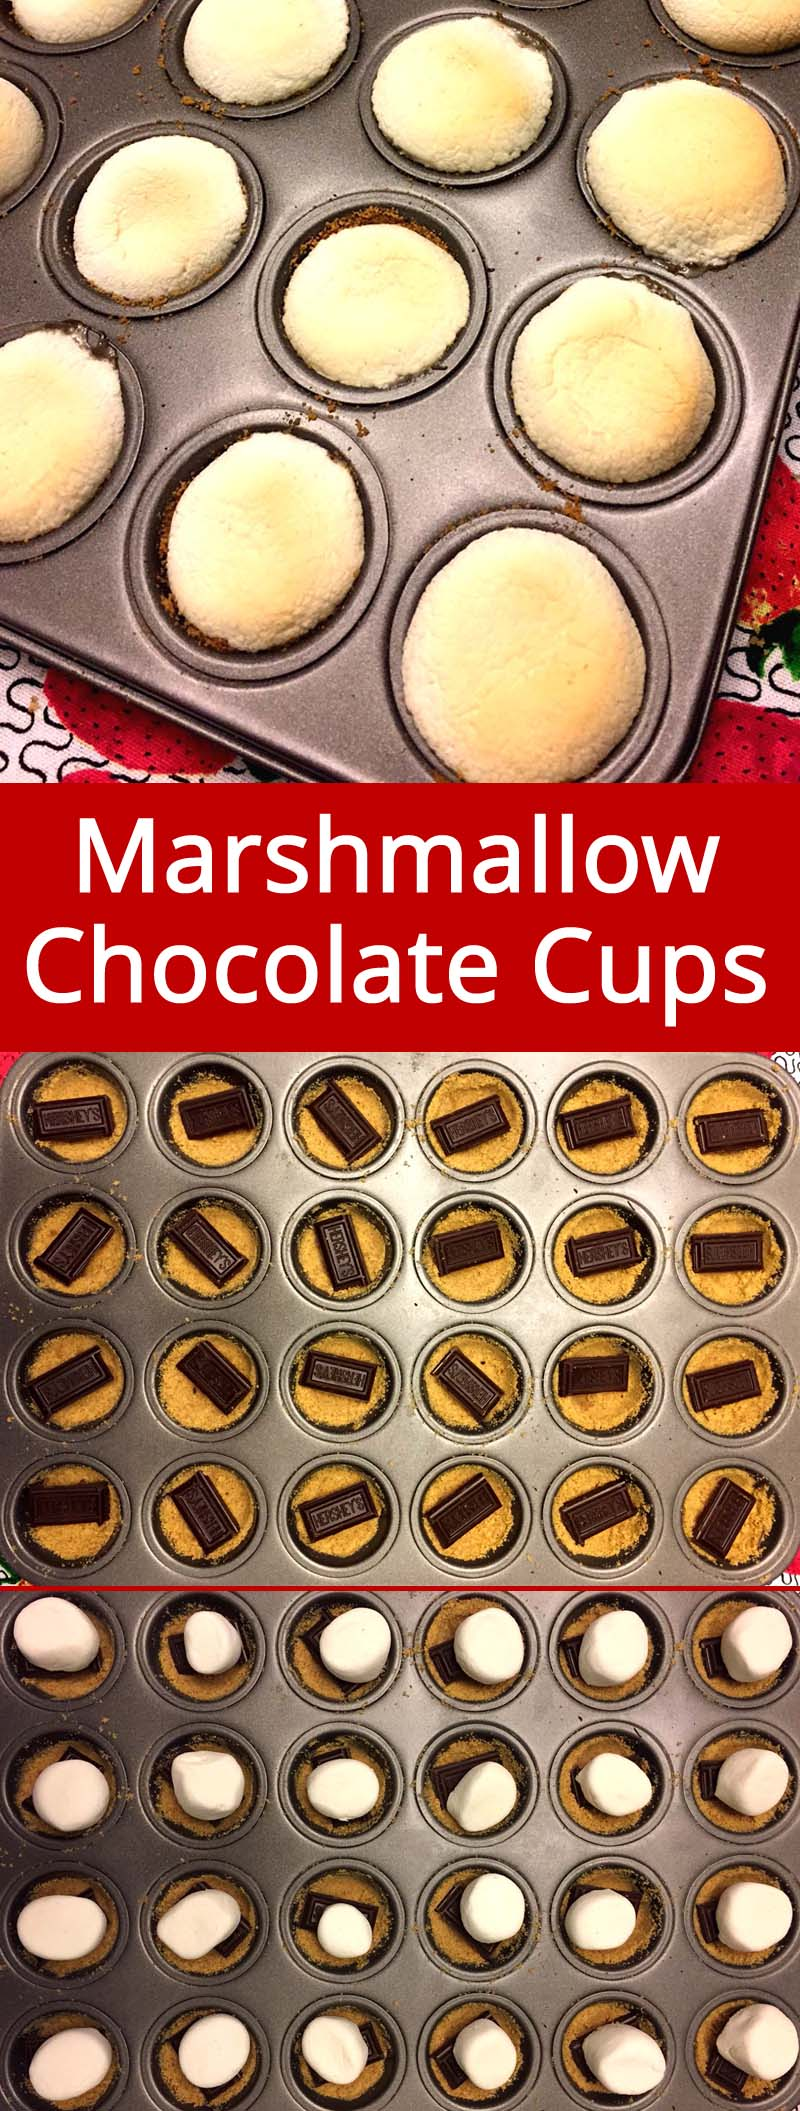 These cute little marshmallow chocolate cups are amazing! Made in a mini-muffin tin, it's like having s'mores in a cup! So easy to make, I love this recipe!